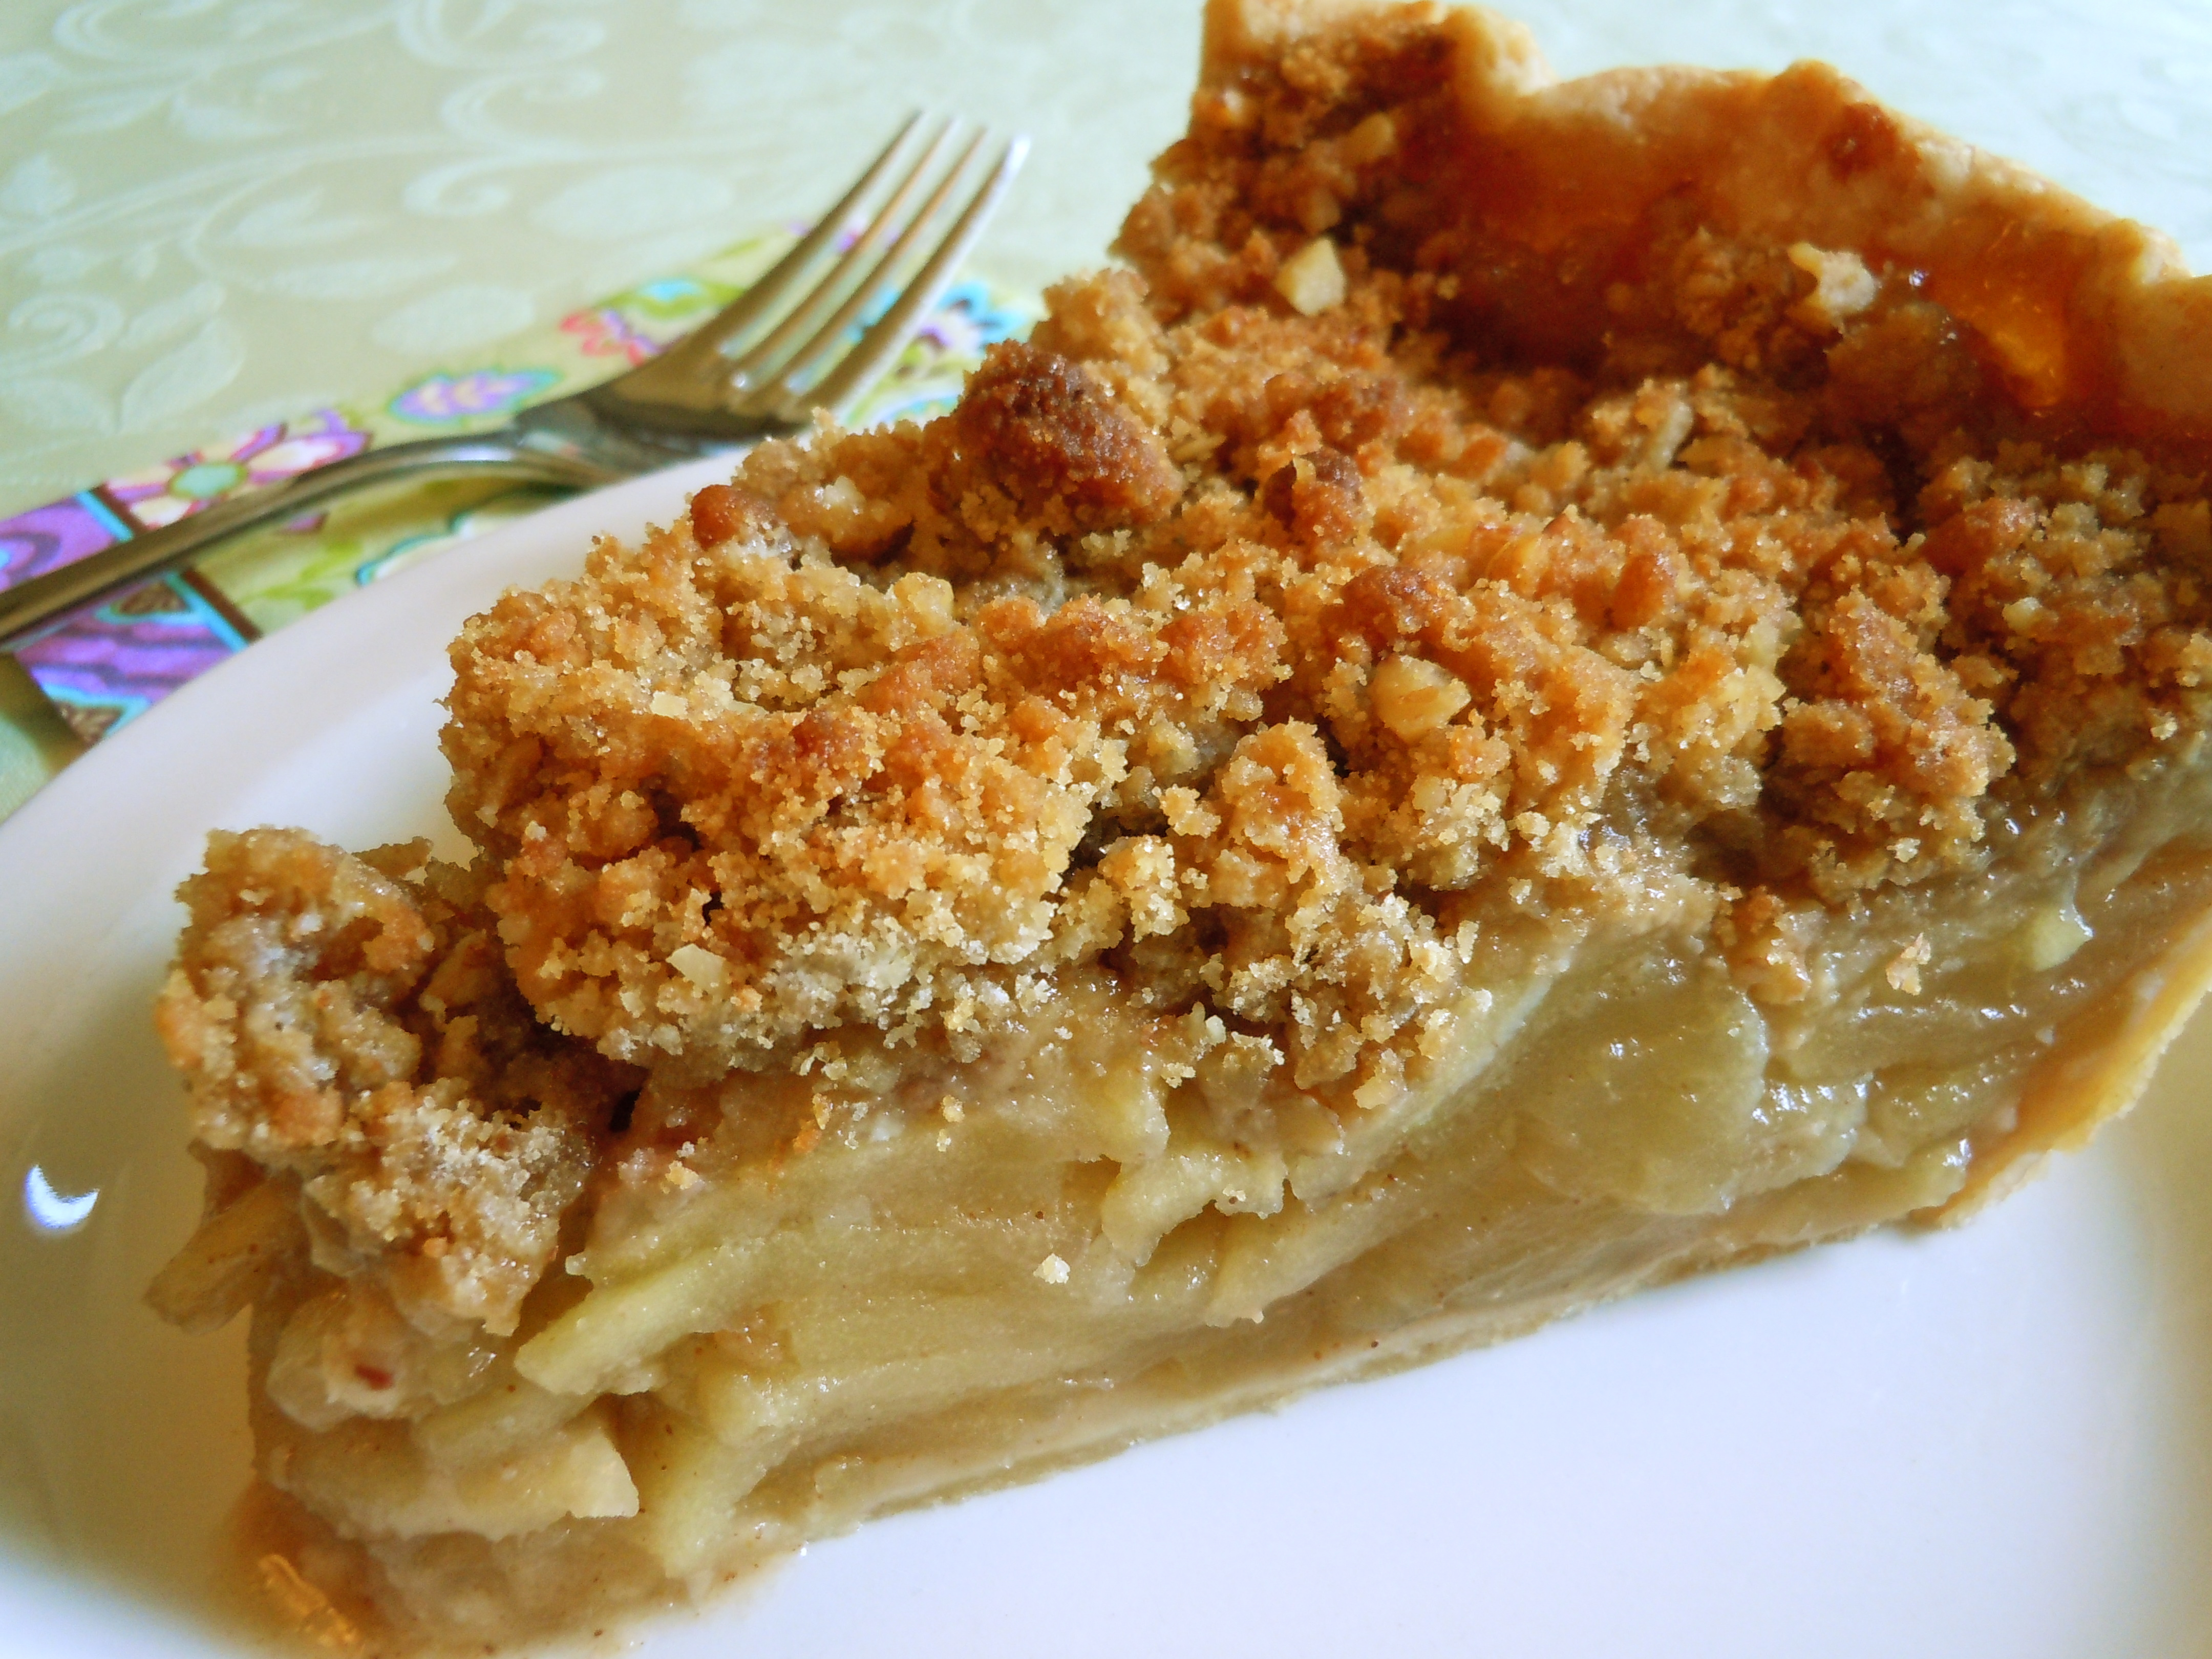 streusel topping and the subtle maple flavor with the apples